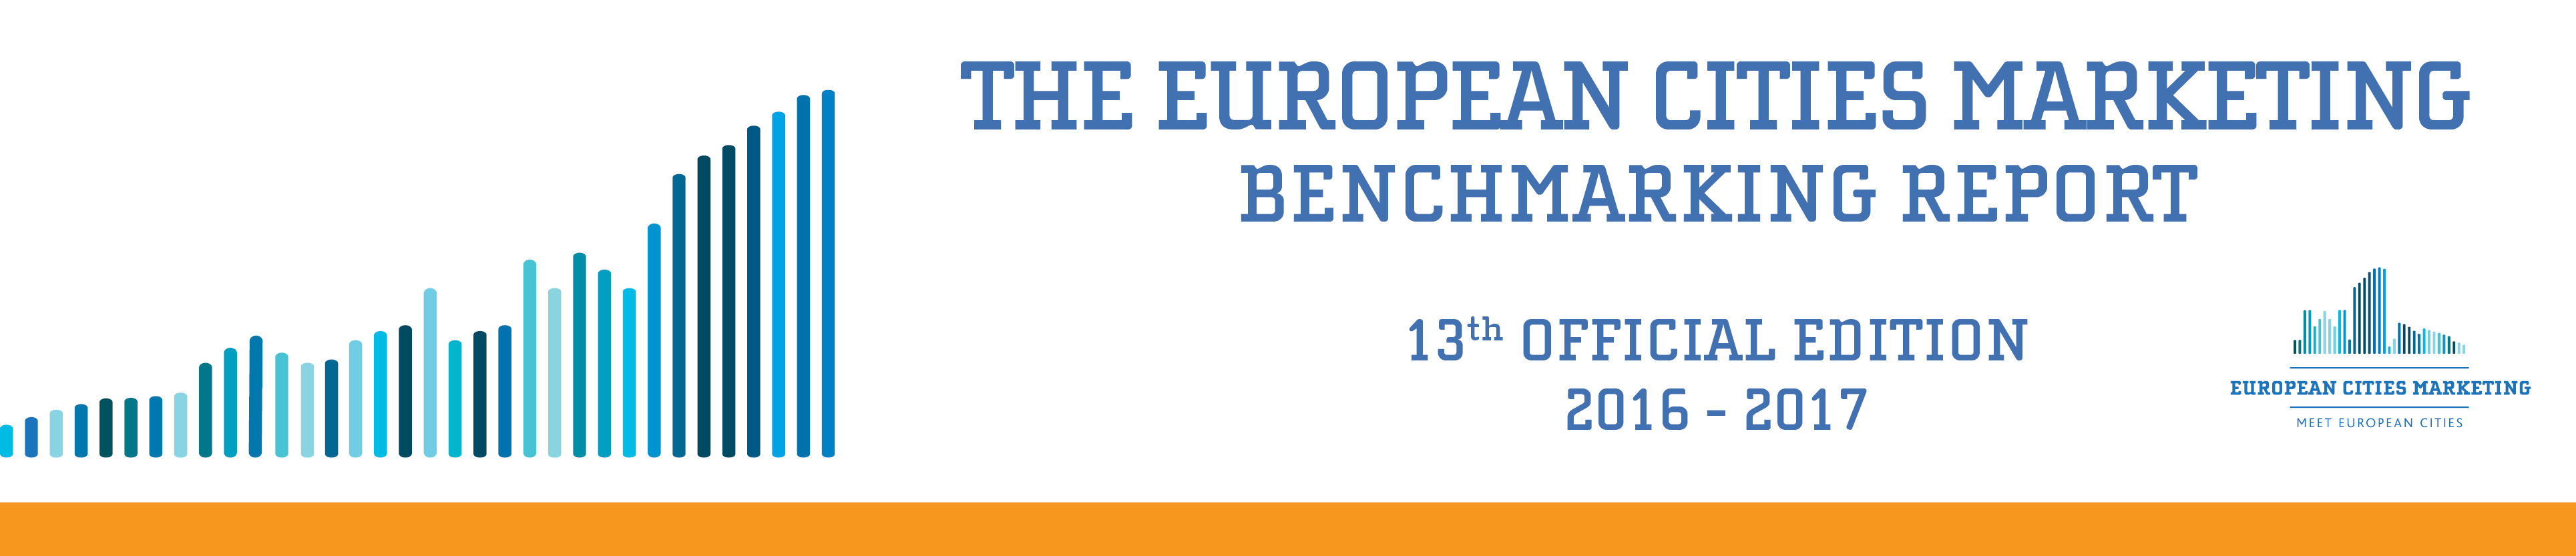 ECM Benchmarking Report 2016-2017